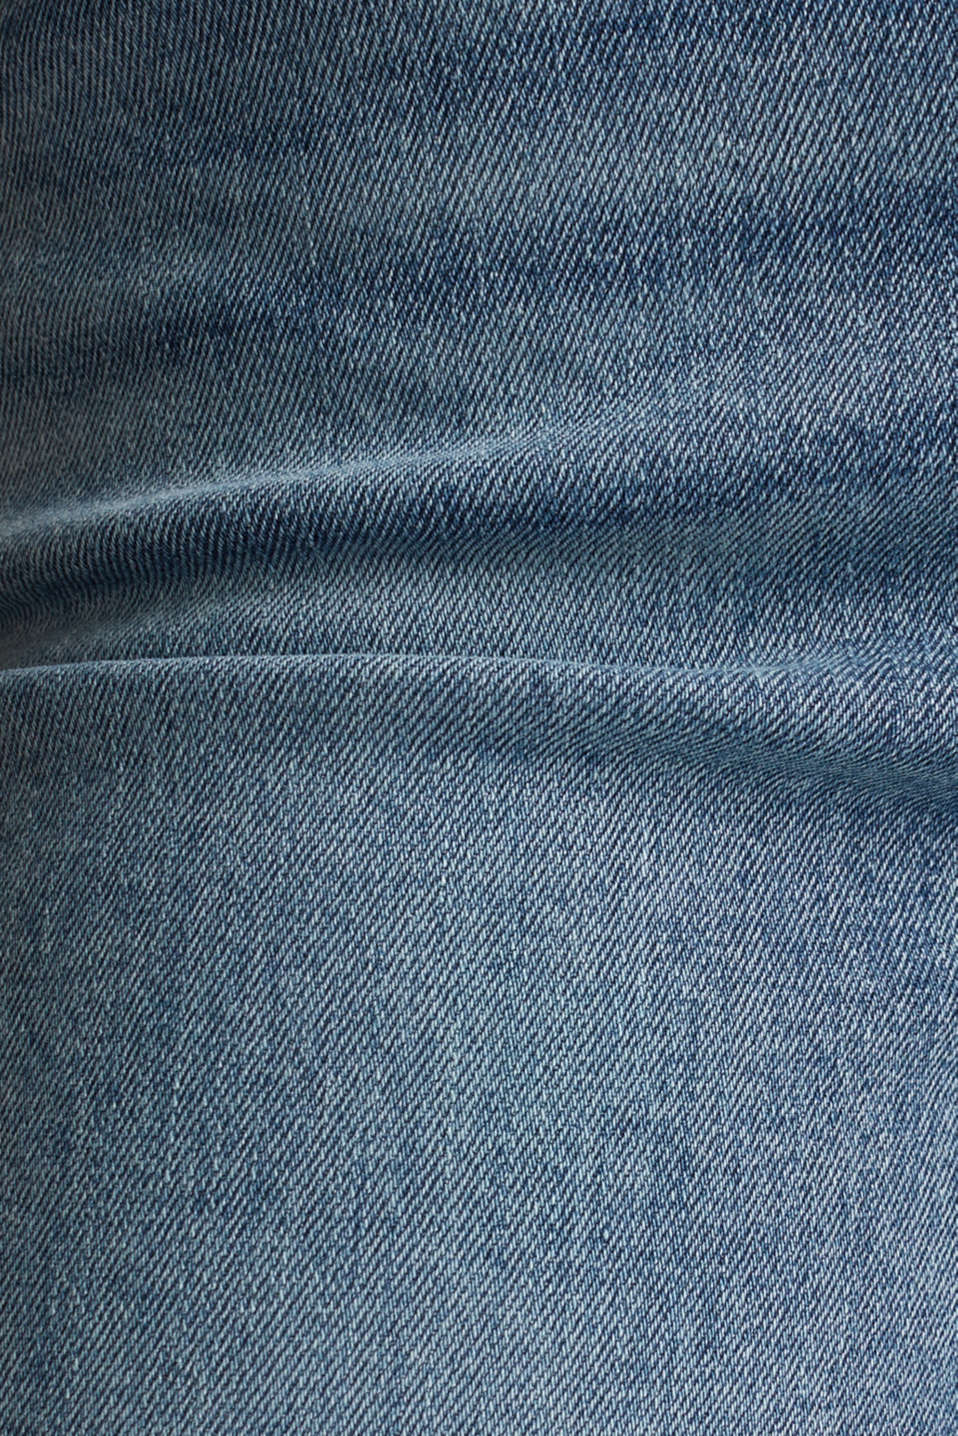 Button-fly jeans, BLUE MEDIUM WASH, detail image number 1